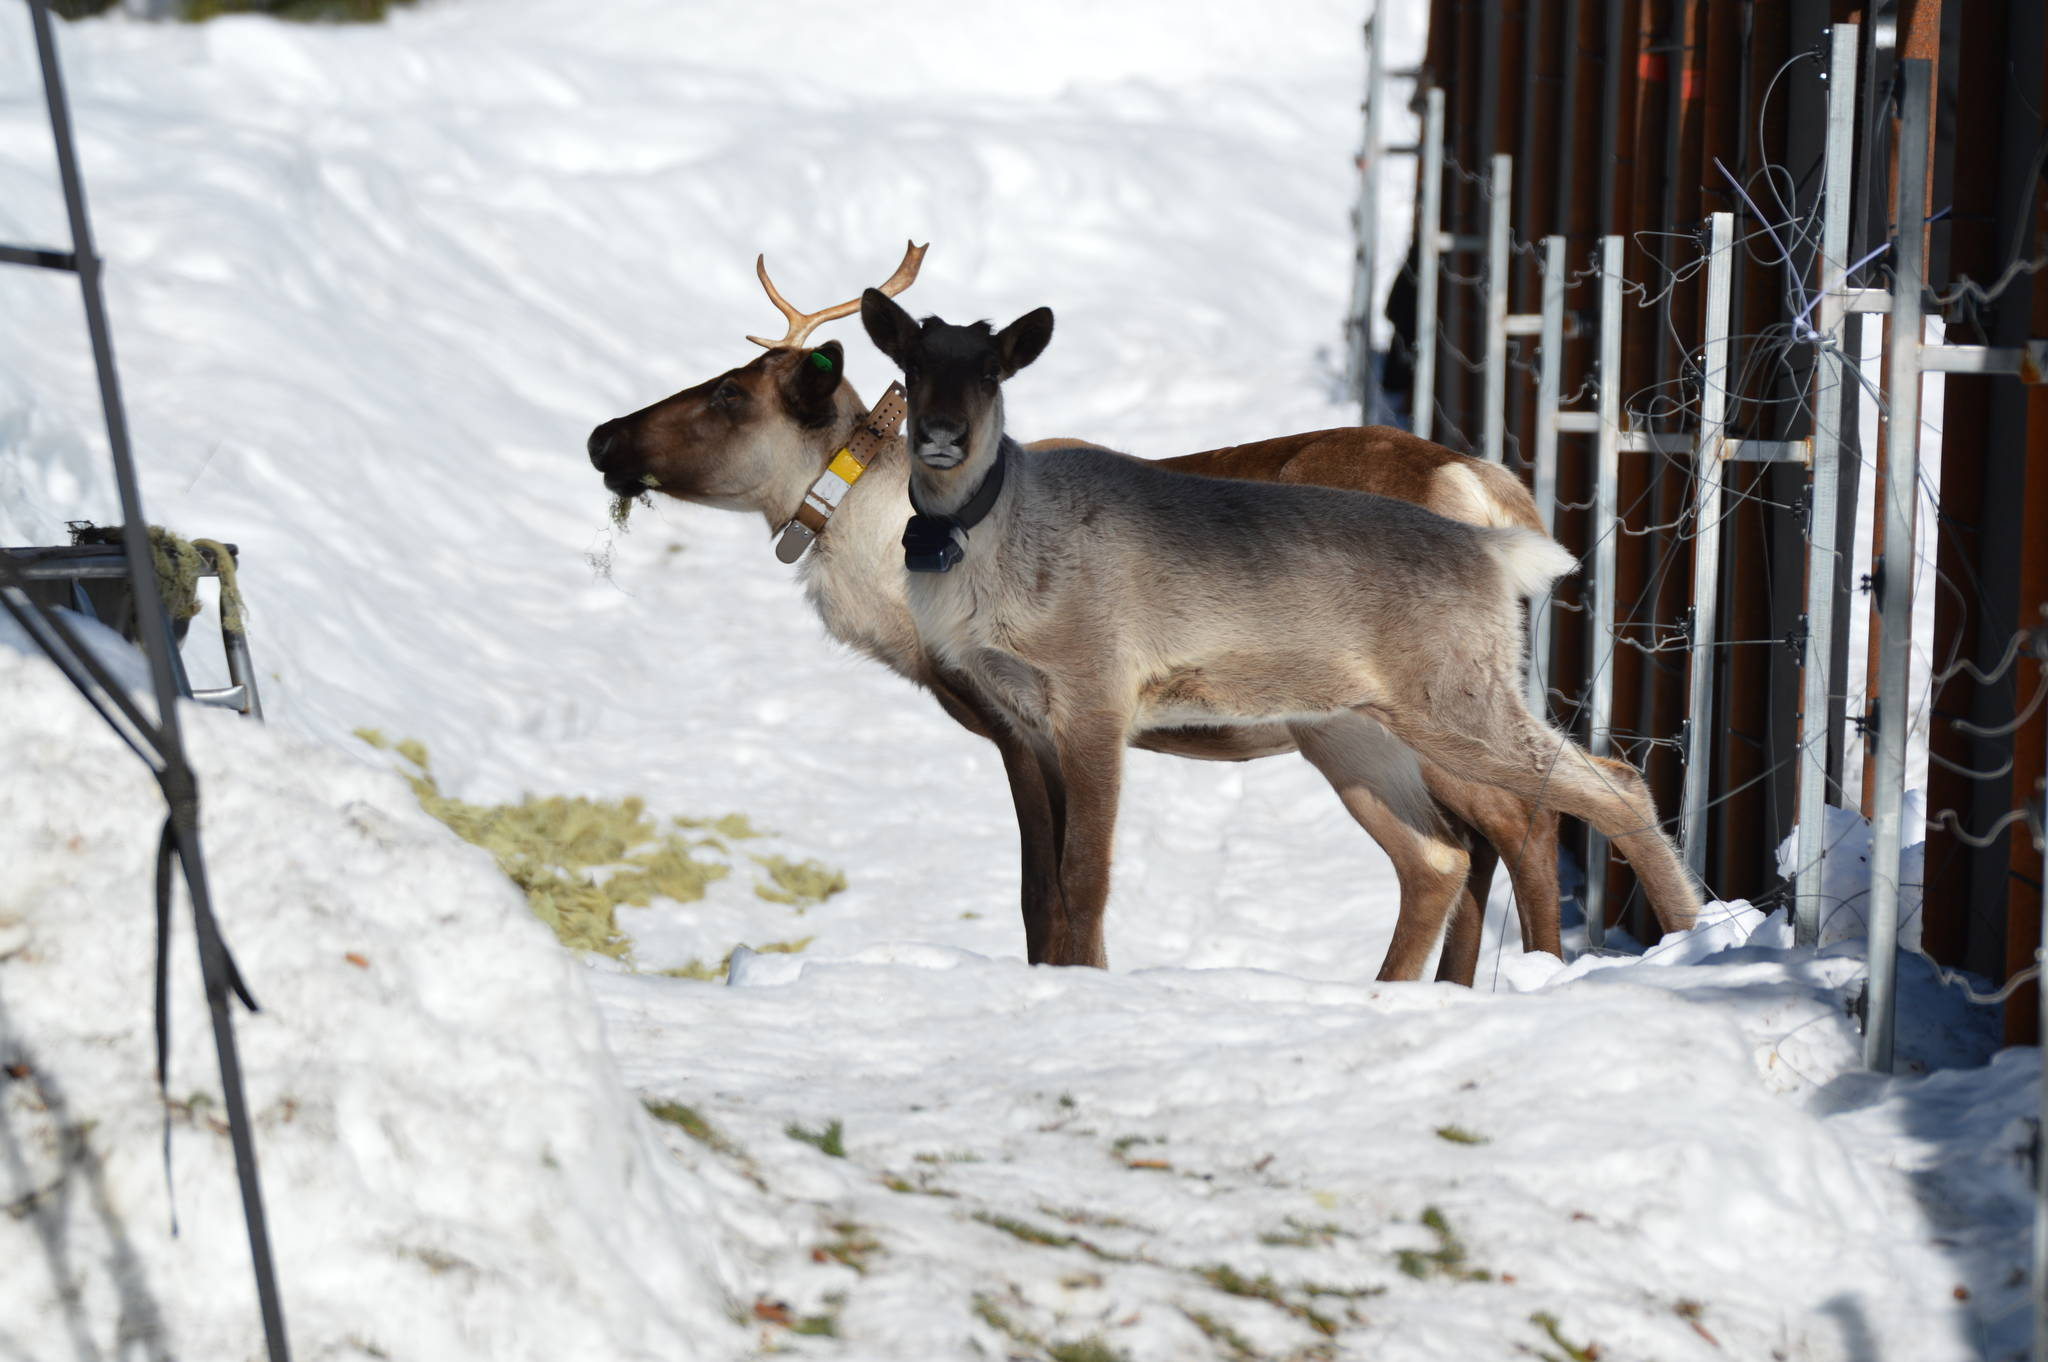 Grace, an orphaned calf who called the Revelstoke maternity pen home for a year and a half, took her first steps into the wild in the spring of 2019. The caribou in the background is one of the five caribou from the now locally extinct south Selkirk and Purcell herds. (Photo by Ministry of Forests, Lands, Natural Resource Operations and Rural Development)